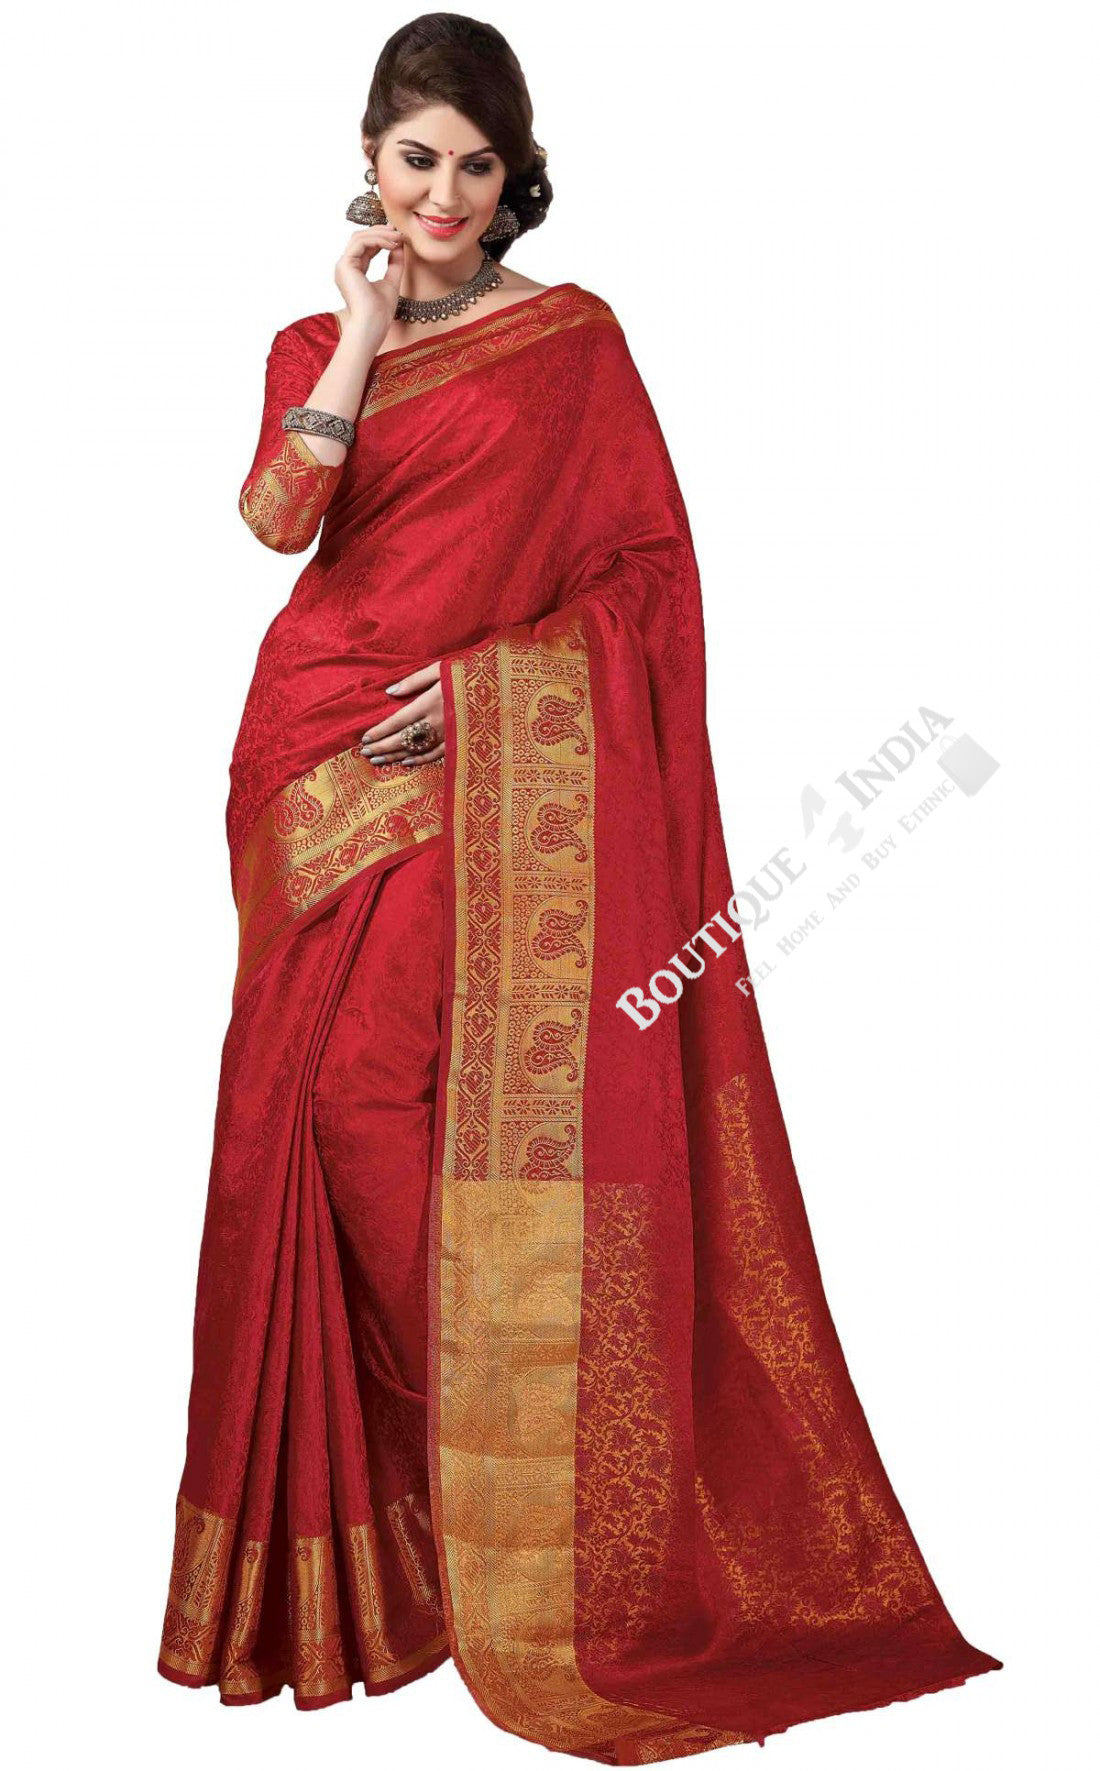 Jacquard Silk Saree in Red and Golden Jarri - Boutique4India Inc.